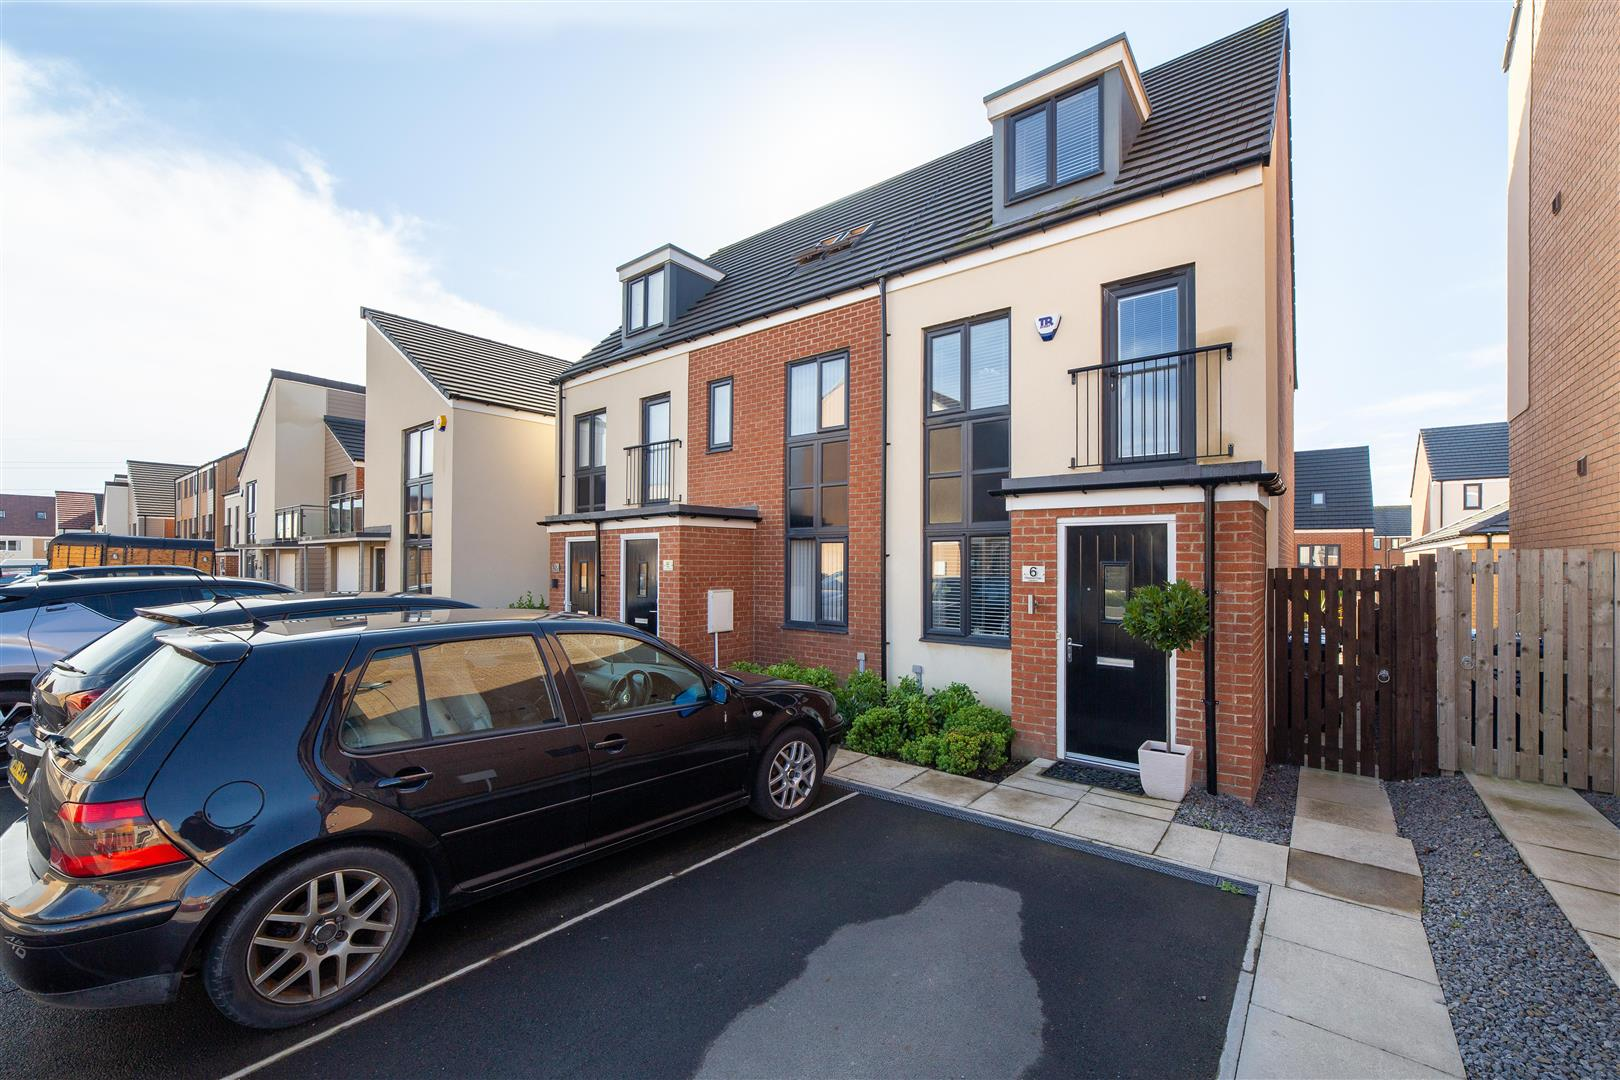 3 bed town house for sale in Newcastle Upon Tyne, NE13 9DP, NE13